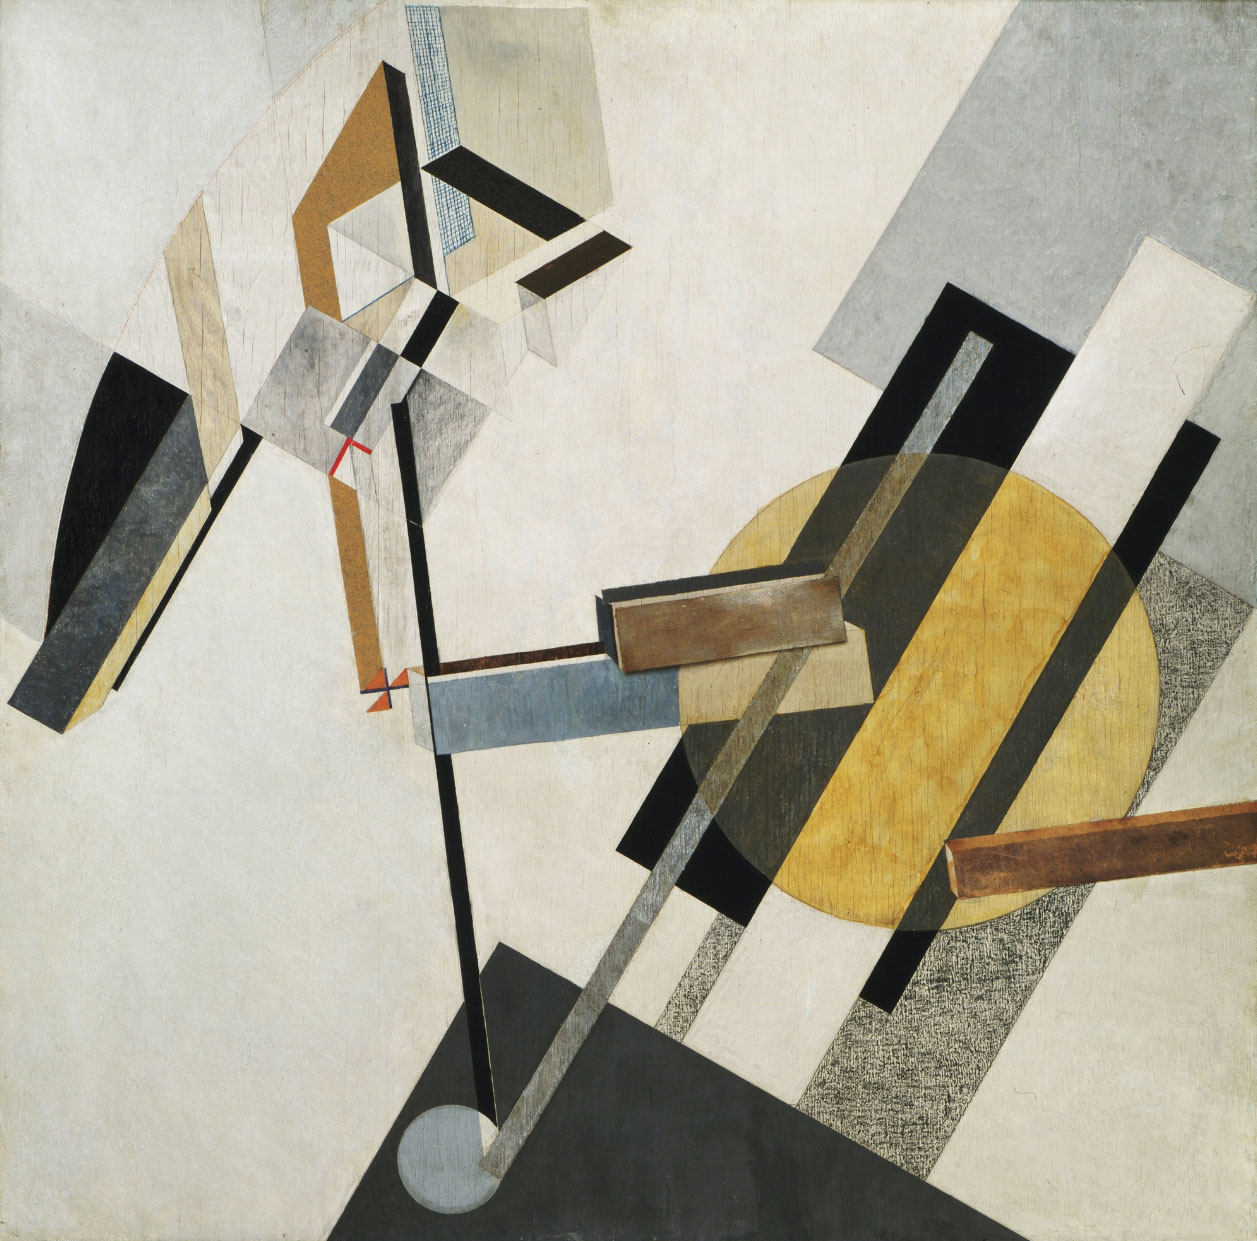 """El Lissitzky, Proun 19D(1920 or 1921) On view at The Museum of ModernArt, Floor5, Collection Galleries. Medium: Gesso, oil, varnish, crayon, colored papers, sandpaper, graph paper, cardboard, metallic paint, and metal foil on plywoodDimensions: 38 3/8 x 38 1/4"""" (97.5 x 97.2 cm)Credit: Katherine S. Dreier BequestCopyright © 2018 Artists Rights Society (ARS), New York / VG Bild-Kunst, Bonn. source MOMA.'for illustrative purposes only'"""